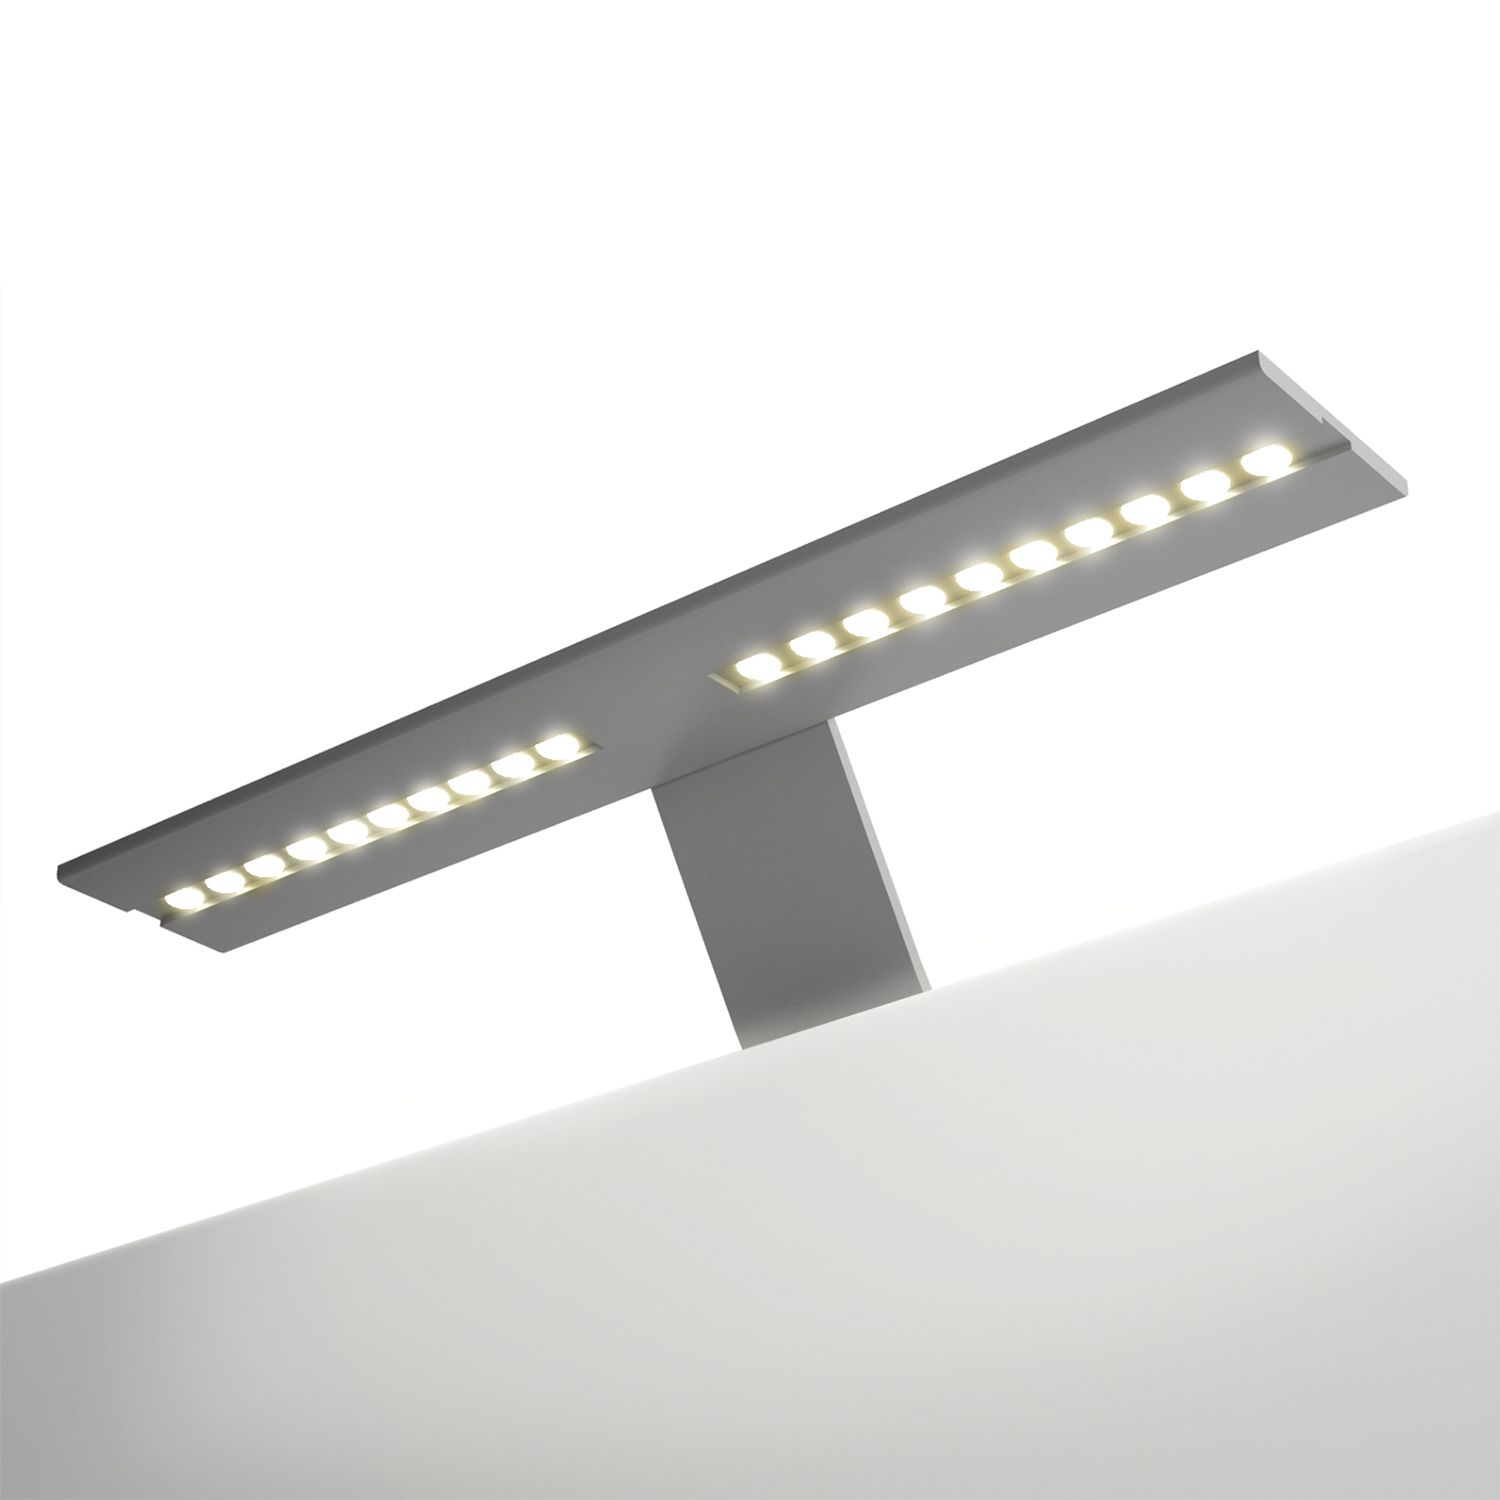 LED Beleuchtung Skoep